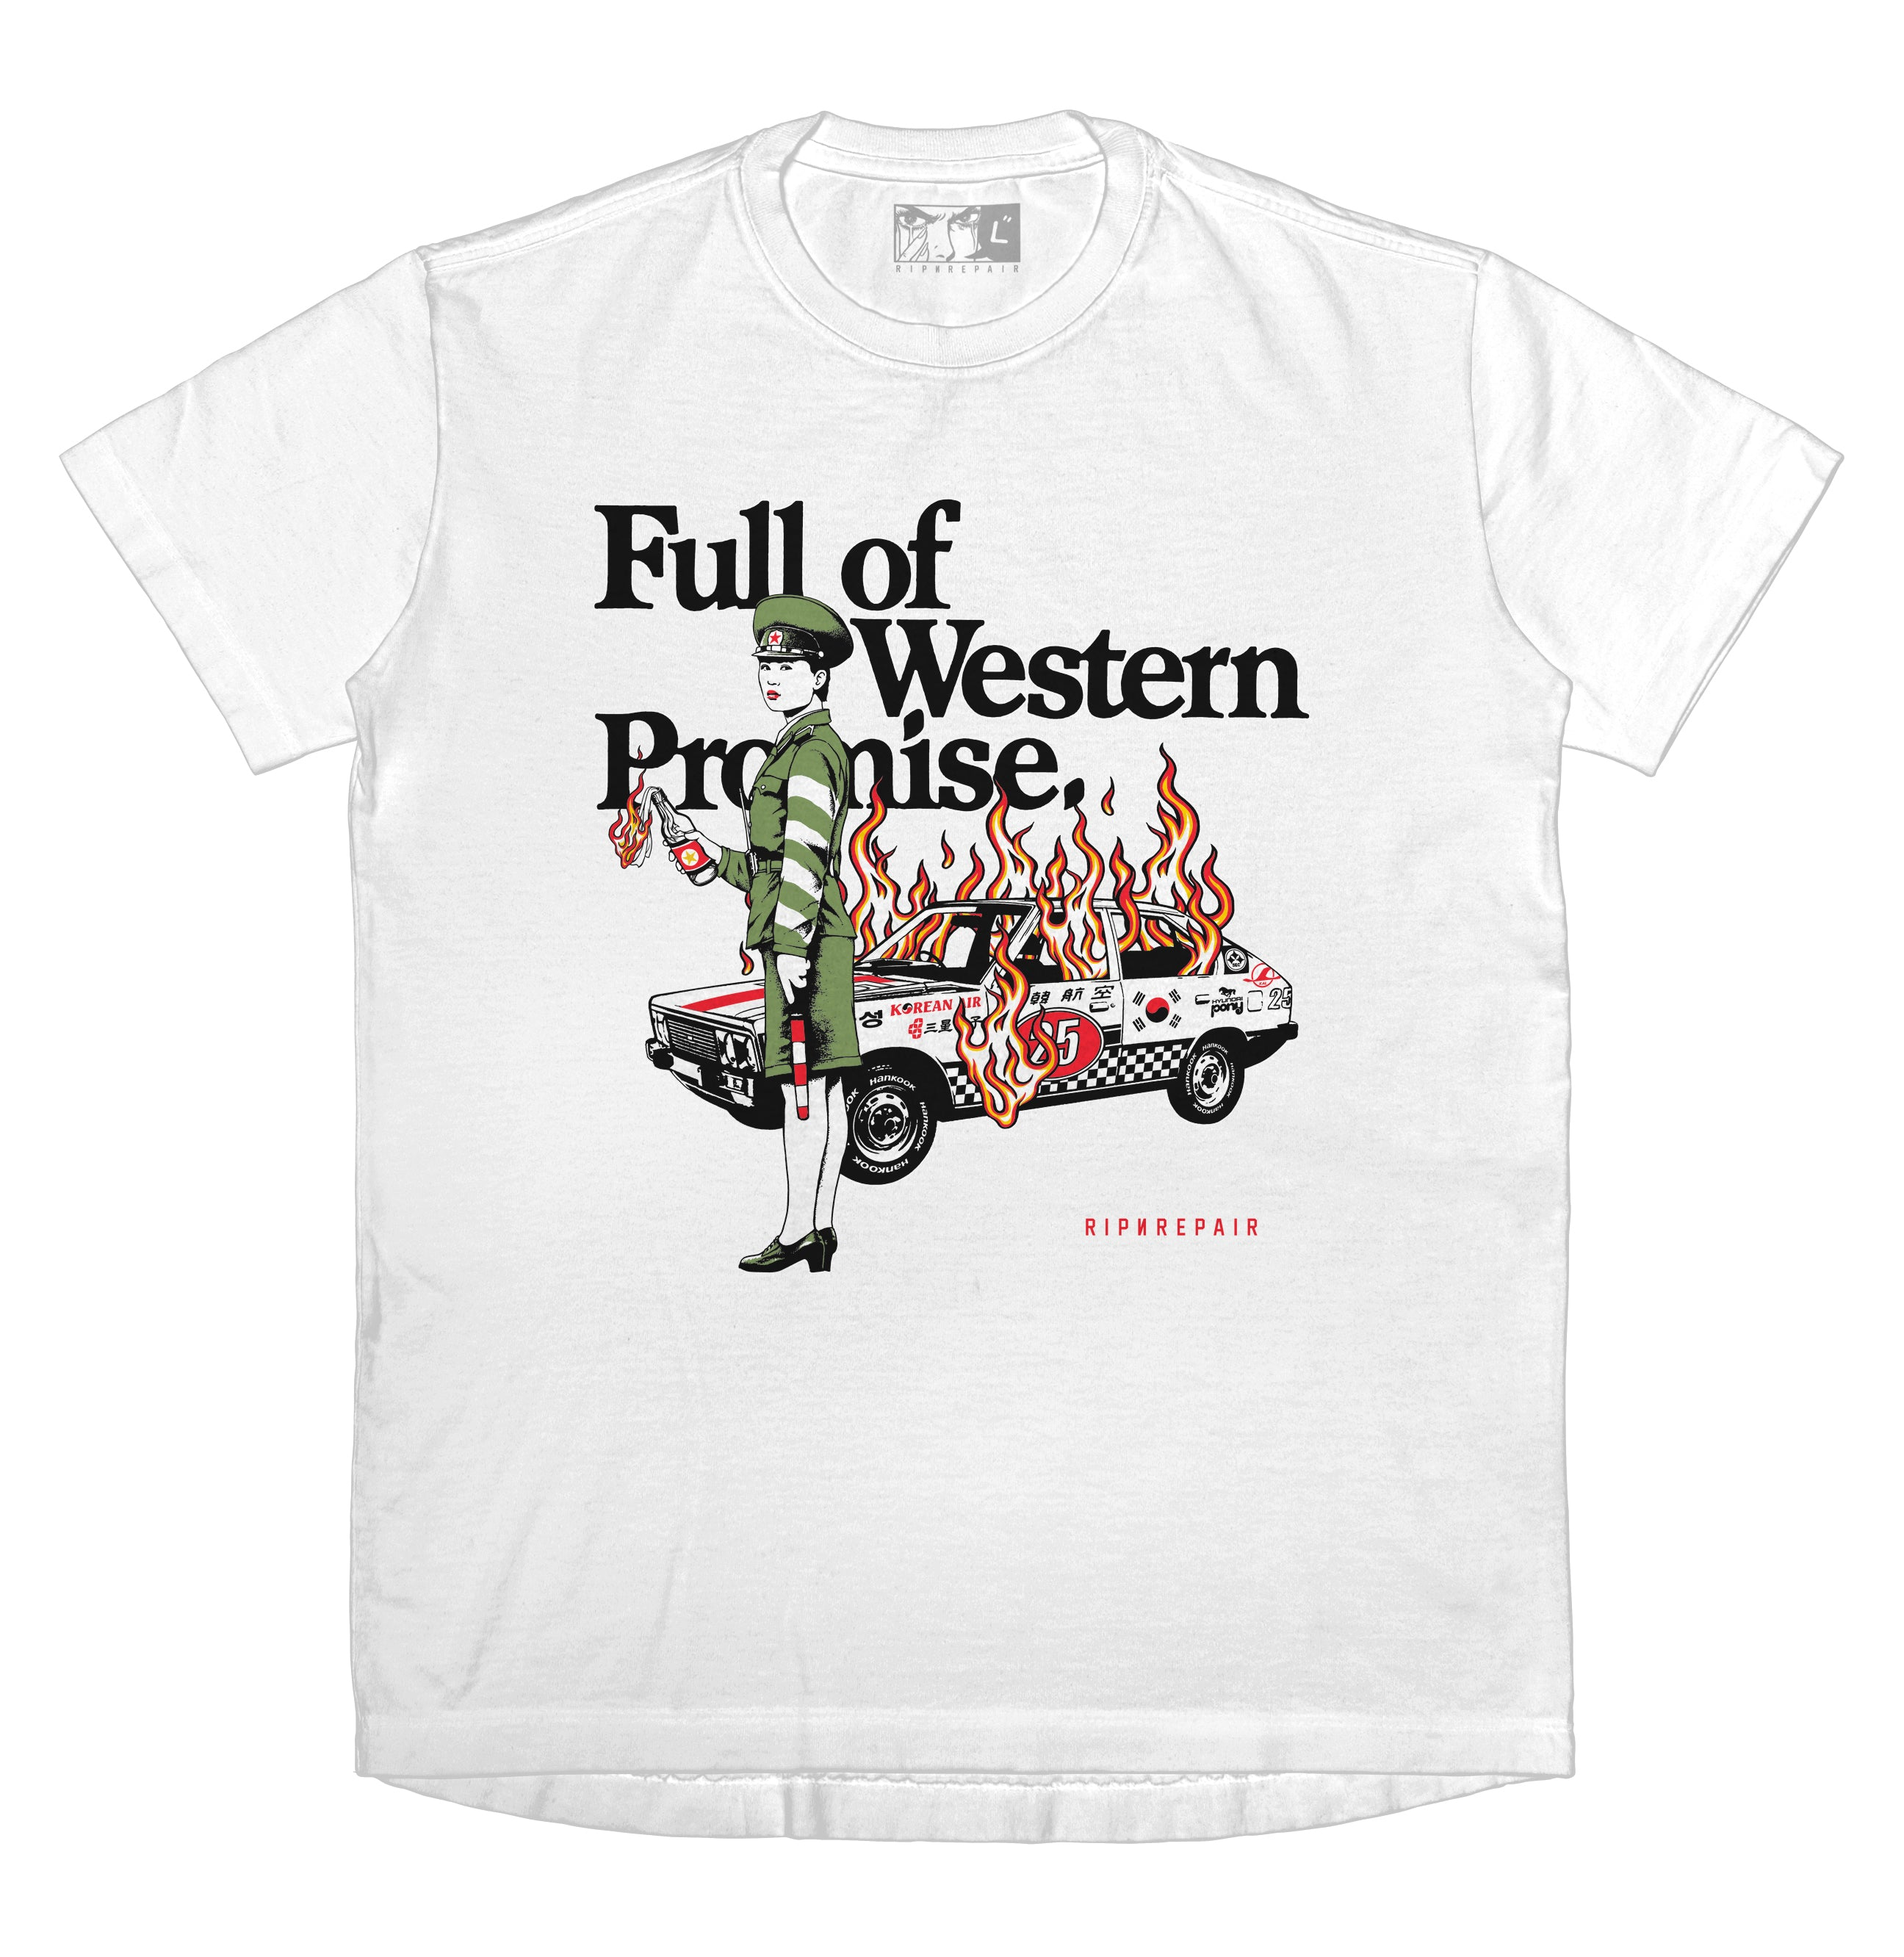 Full of Western Promise - T-shirt (White)